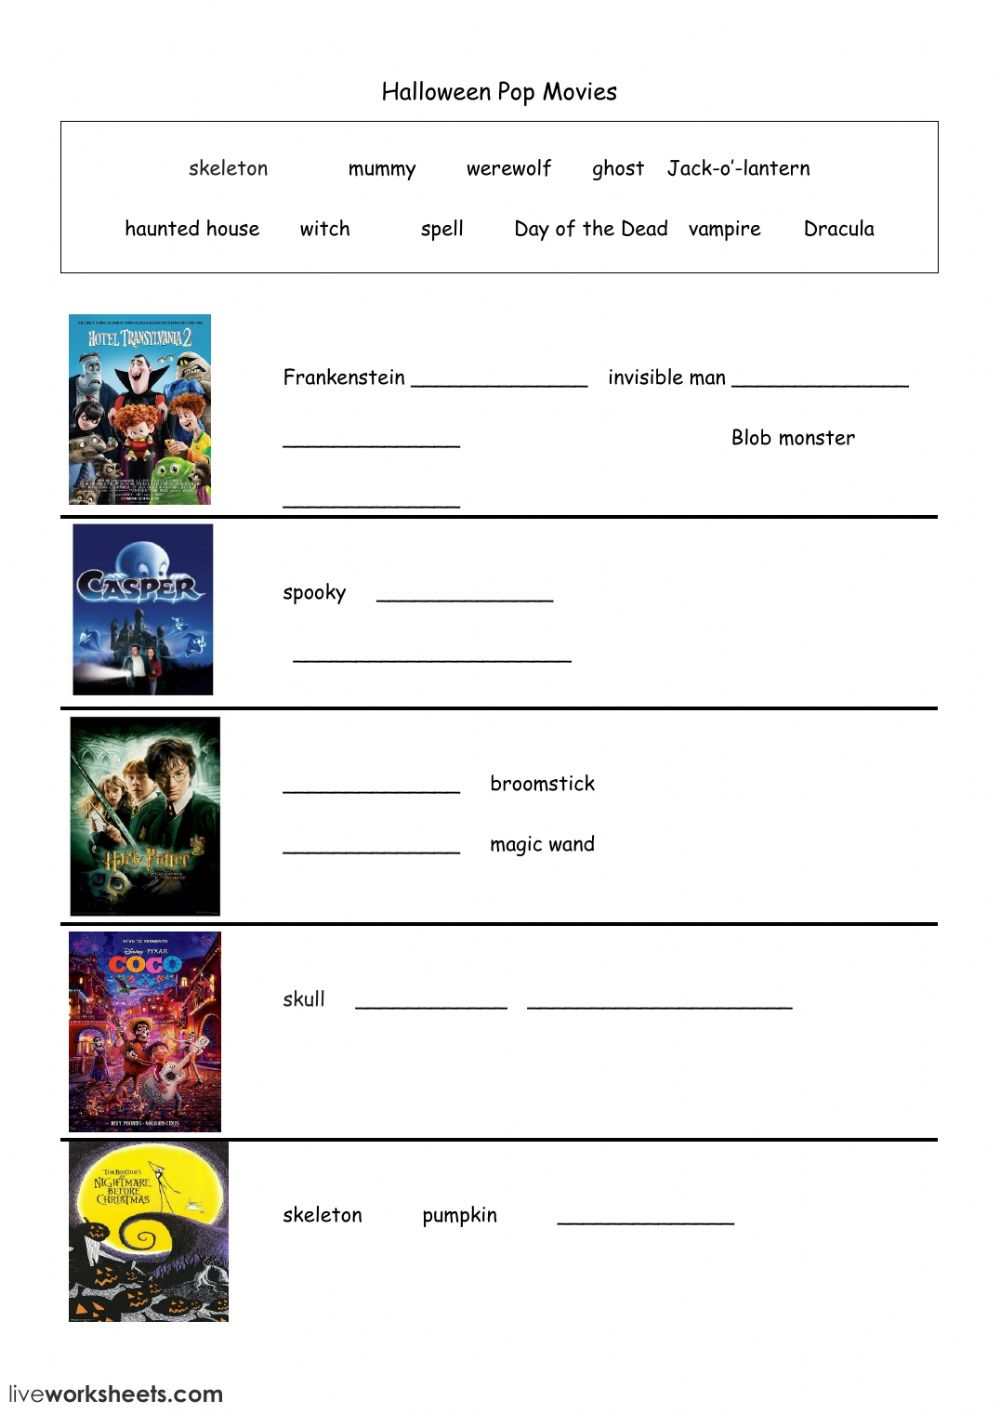 Halloween Pop Movies Worksheet